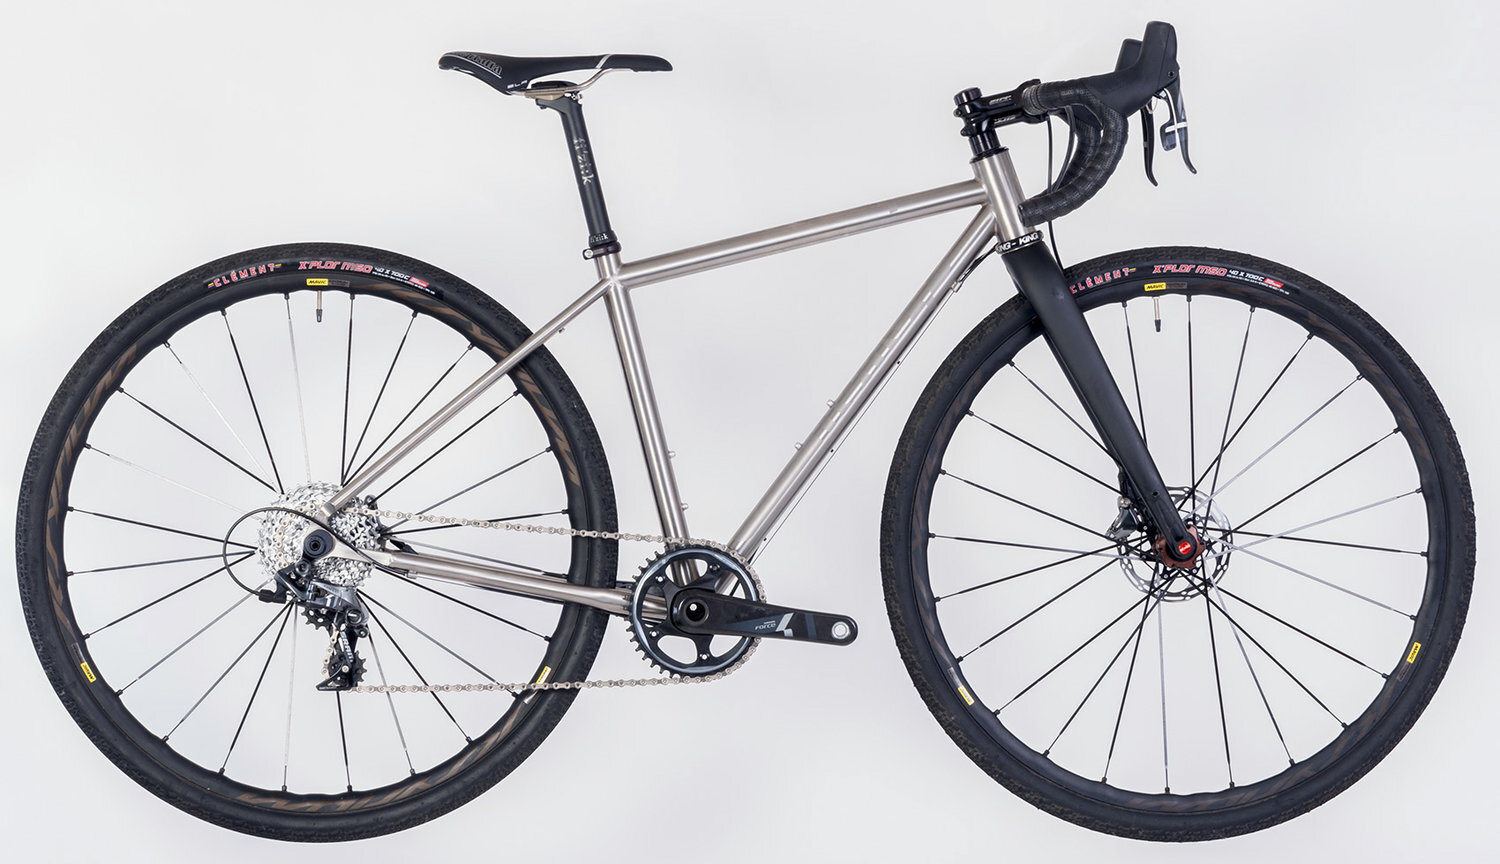 This bike is one of the Honey Allroads titanium bikes, a bike that was seen under many riders for the Honey 100 since it's most perfectly suited to gravel and mixed terrain riding.